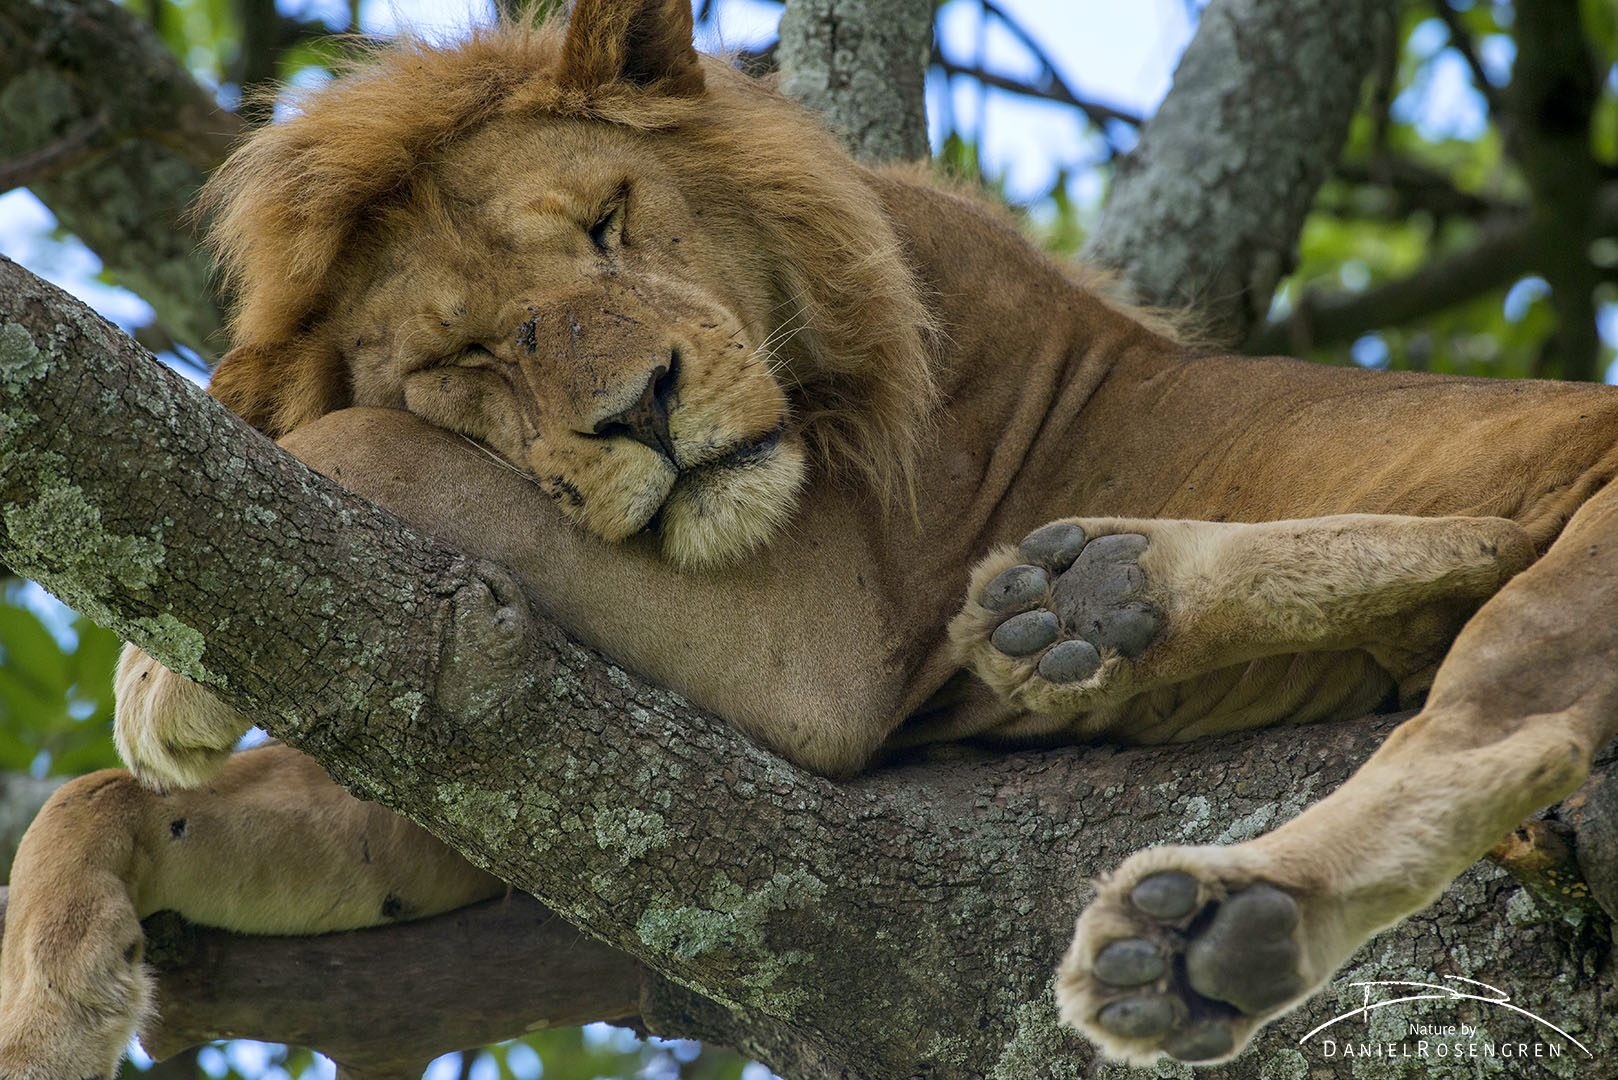 A male lion in a tree is a rare sight. © Daniel Rosengren